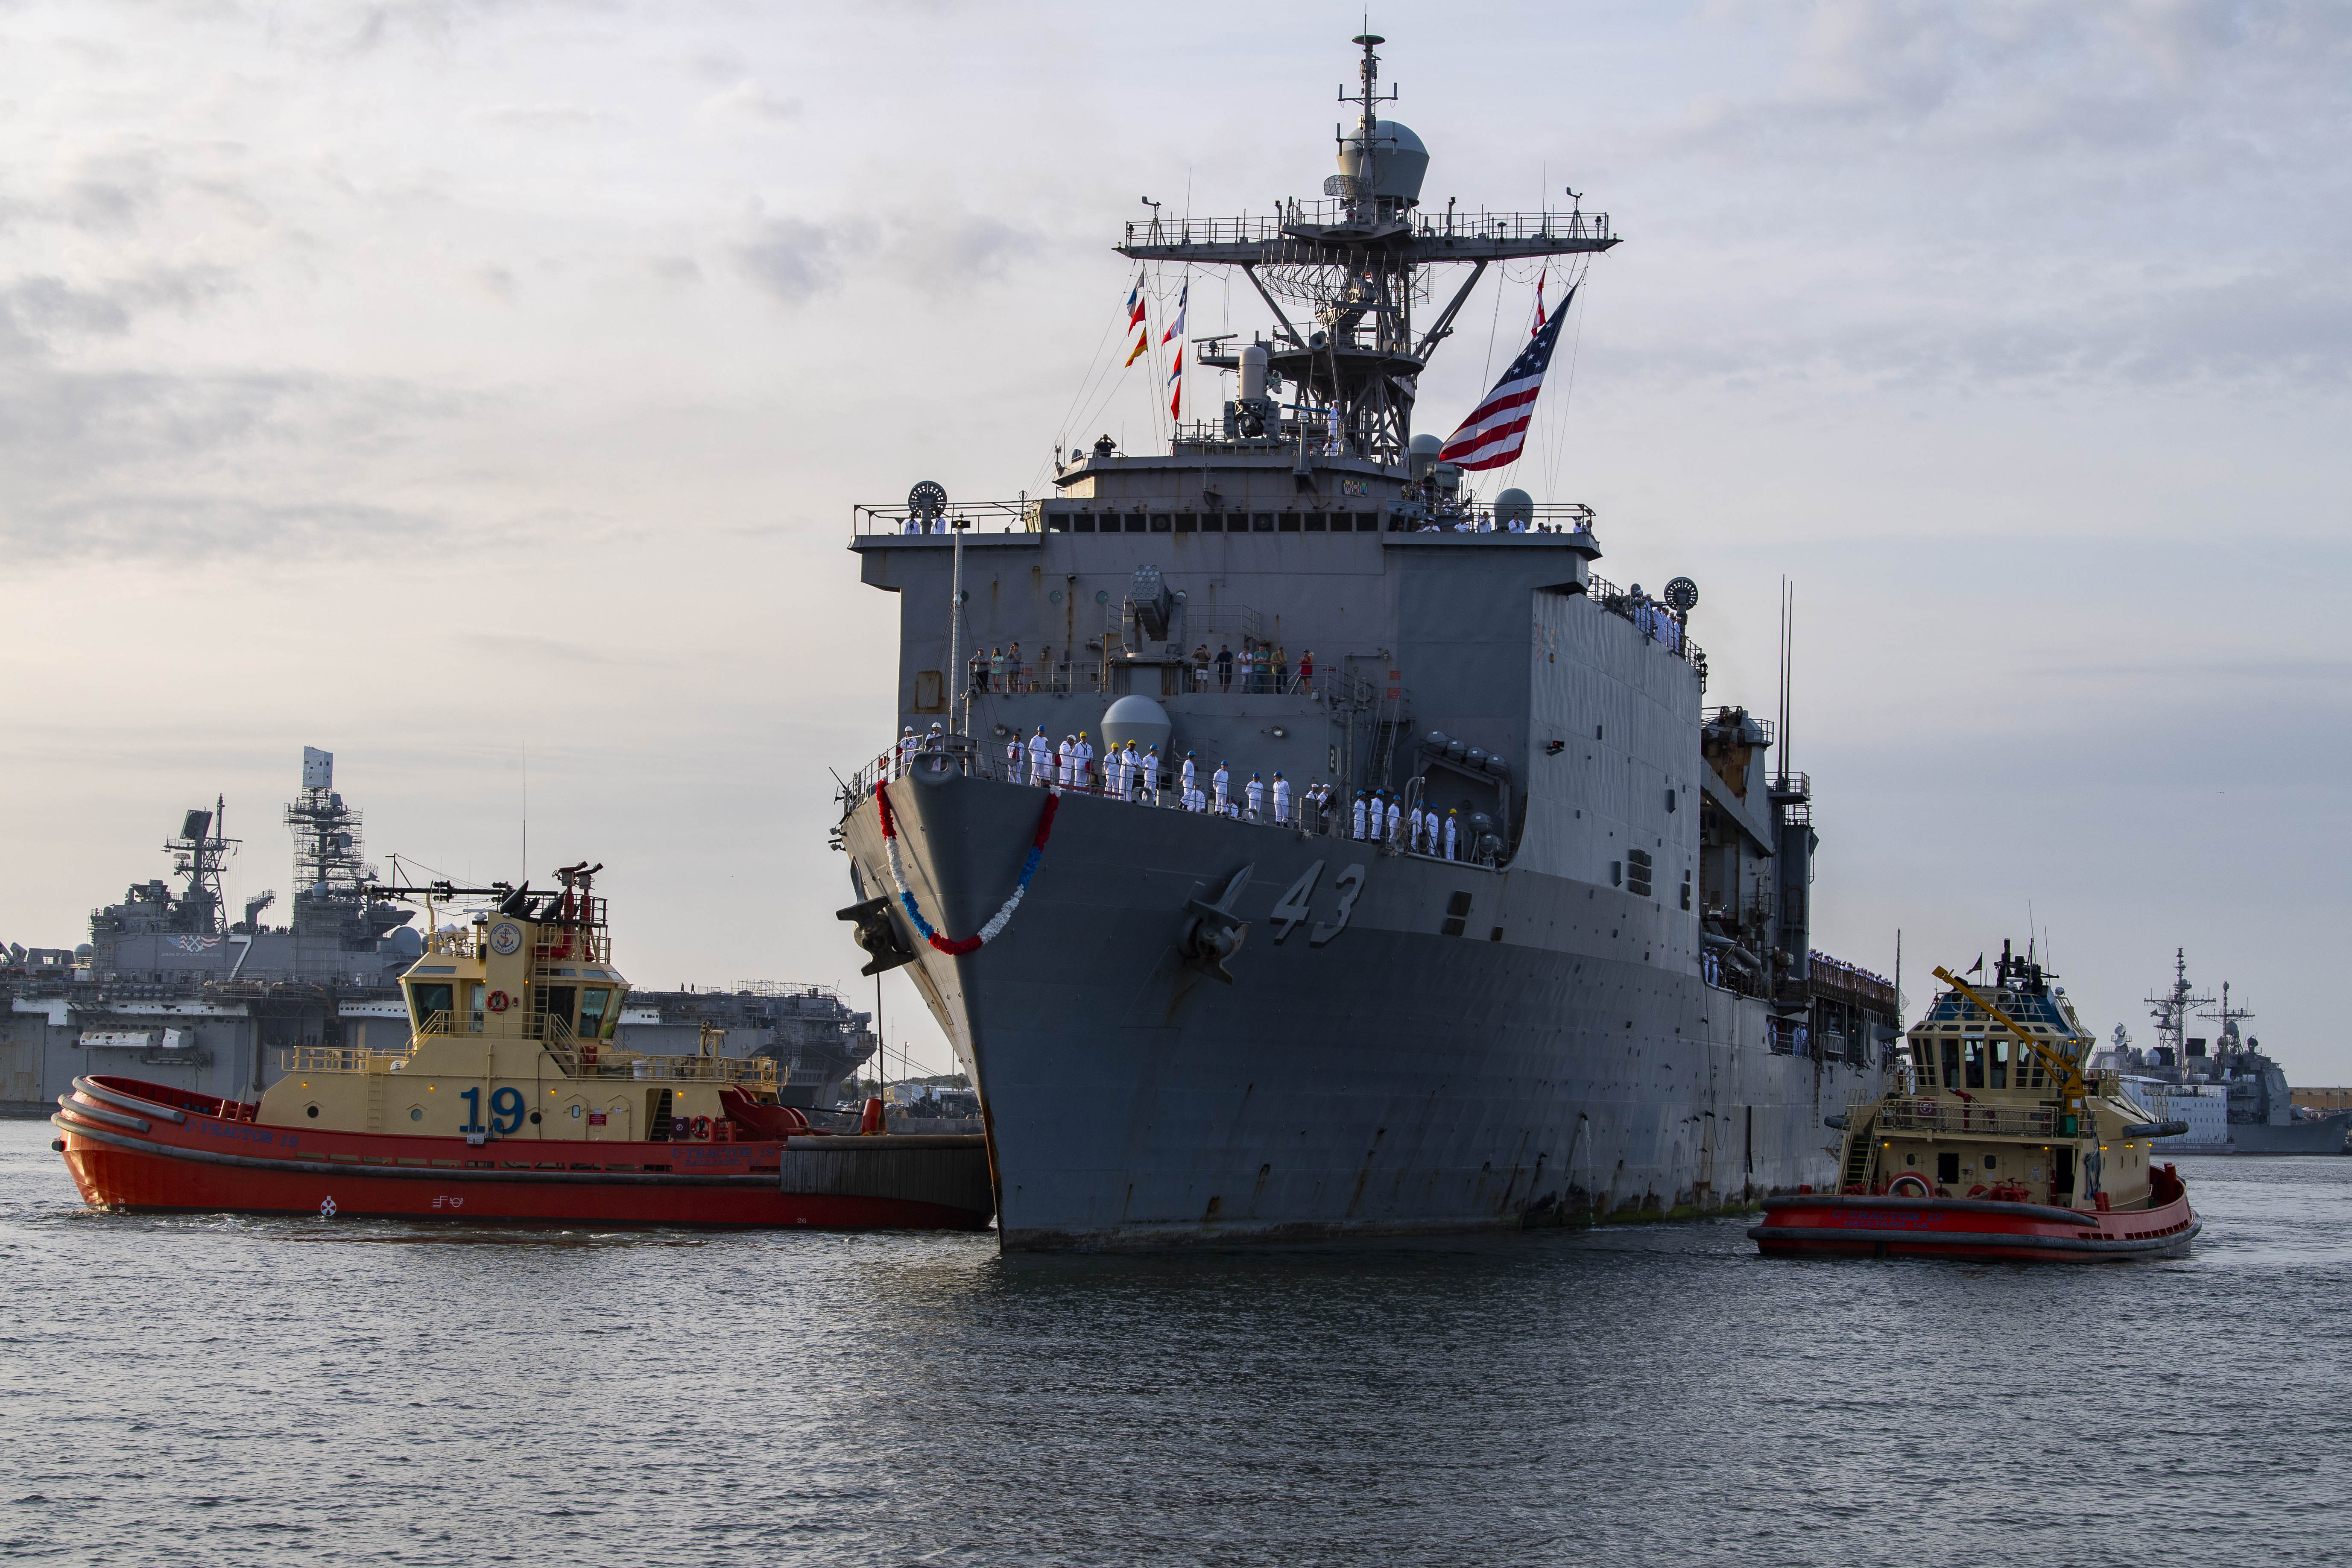 The Whidbey Island-class amphibious dock landing ship USS Fort McHenry (LSD 43) at Naval Station Mayport, Fla. It will be riding out the storm in Mayport.